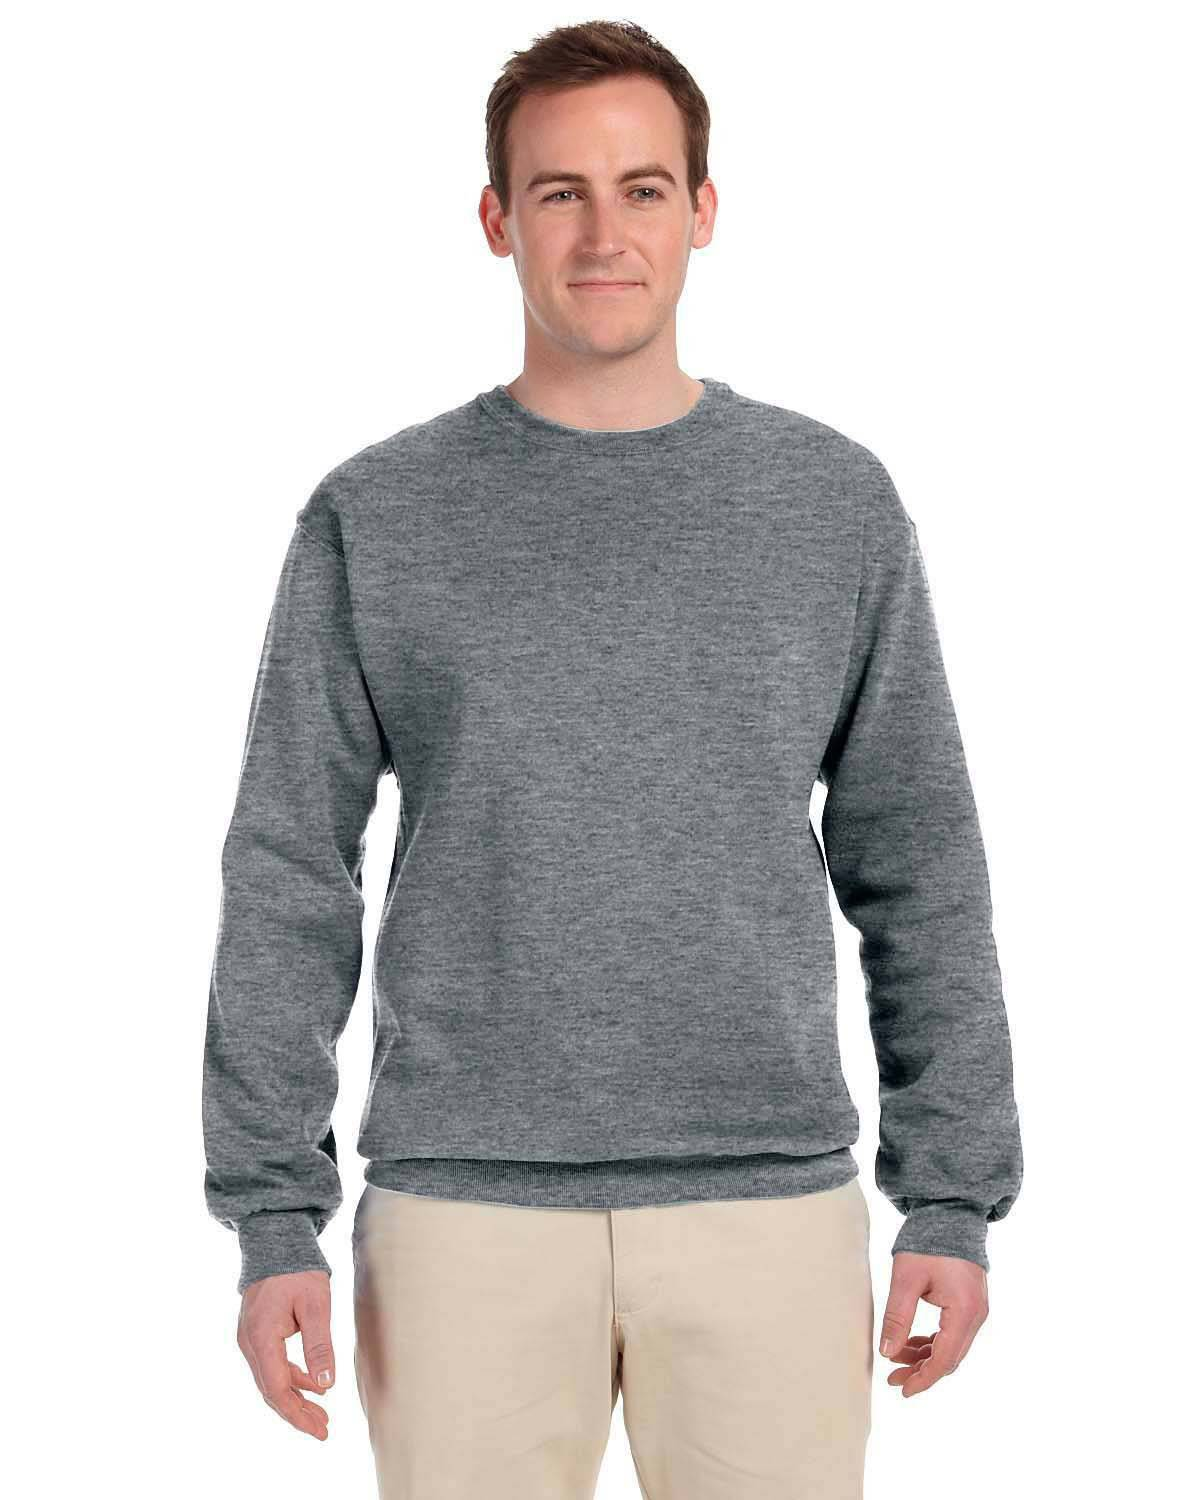 Fruit of the Loom 82300 70/30 Super Heavyweight Crew - Athletic Heather - S 82300